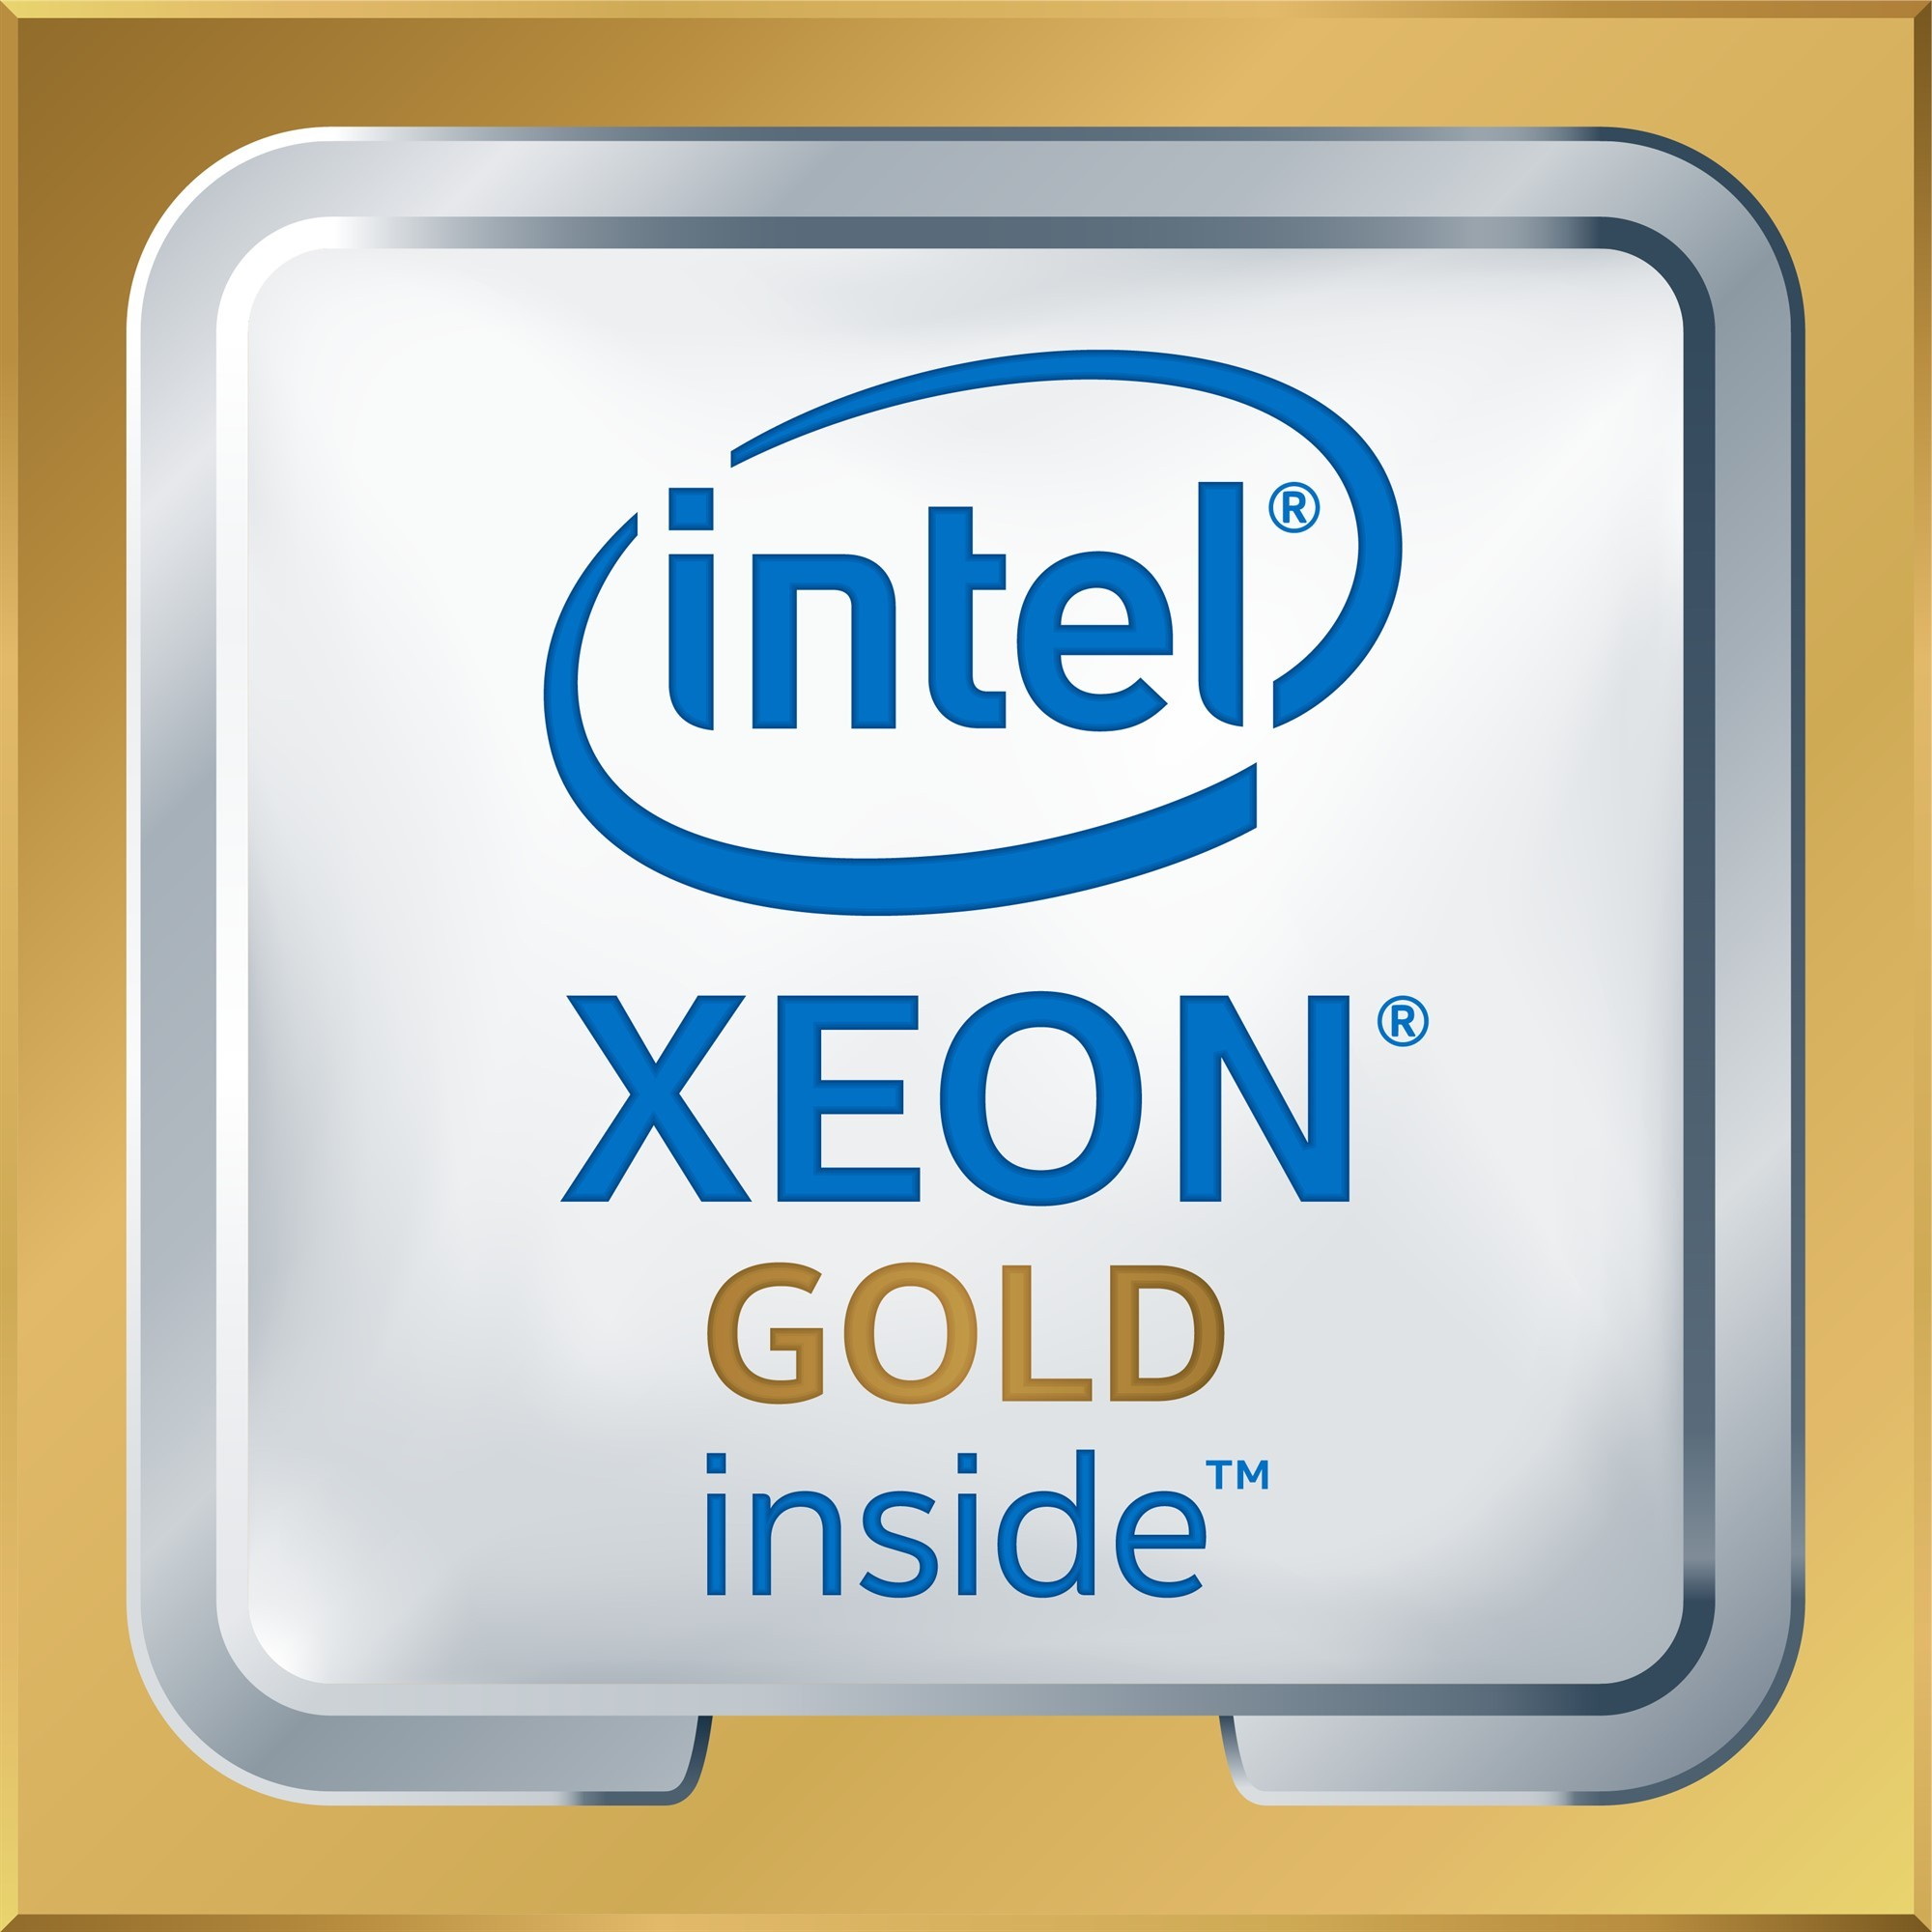 INTEL XEON GOLD 6150 PROCESSOR (24.75M CACHE, 2.70 GHZ) 2.70GHZ 24.75MB L3